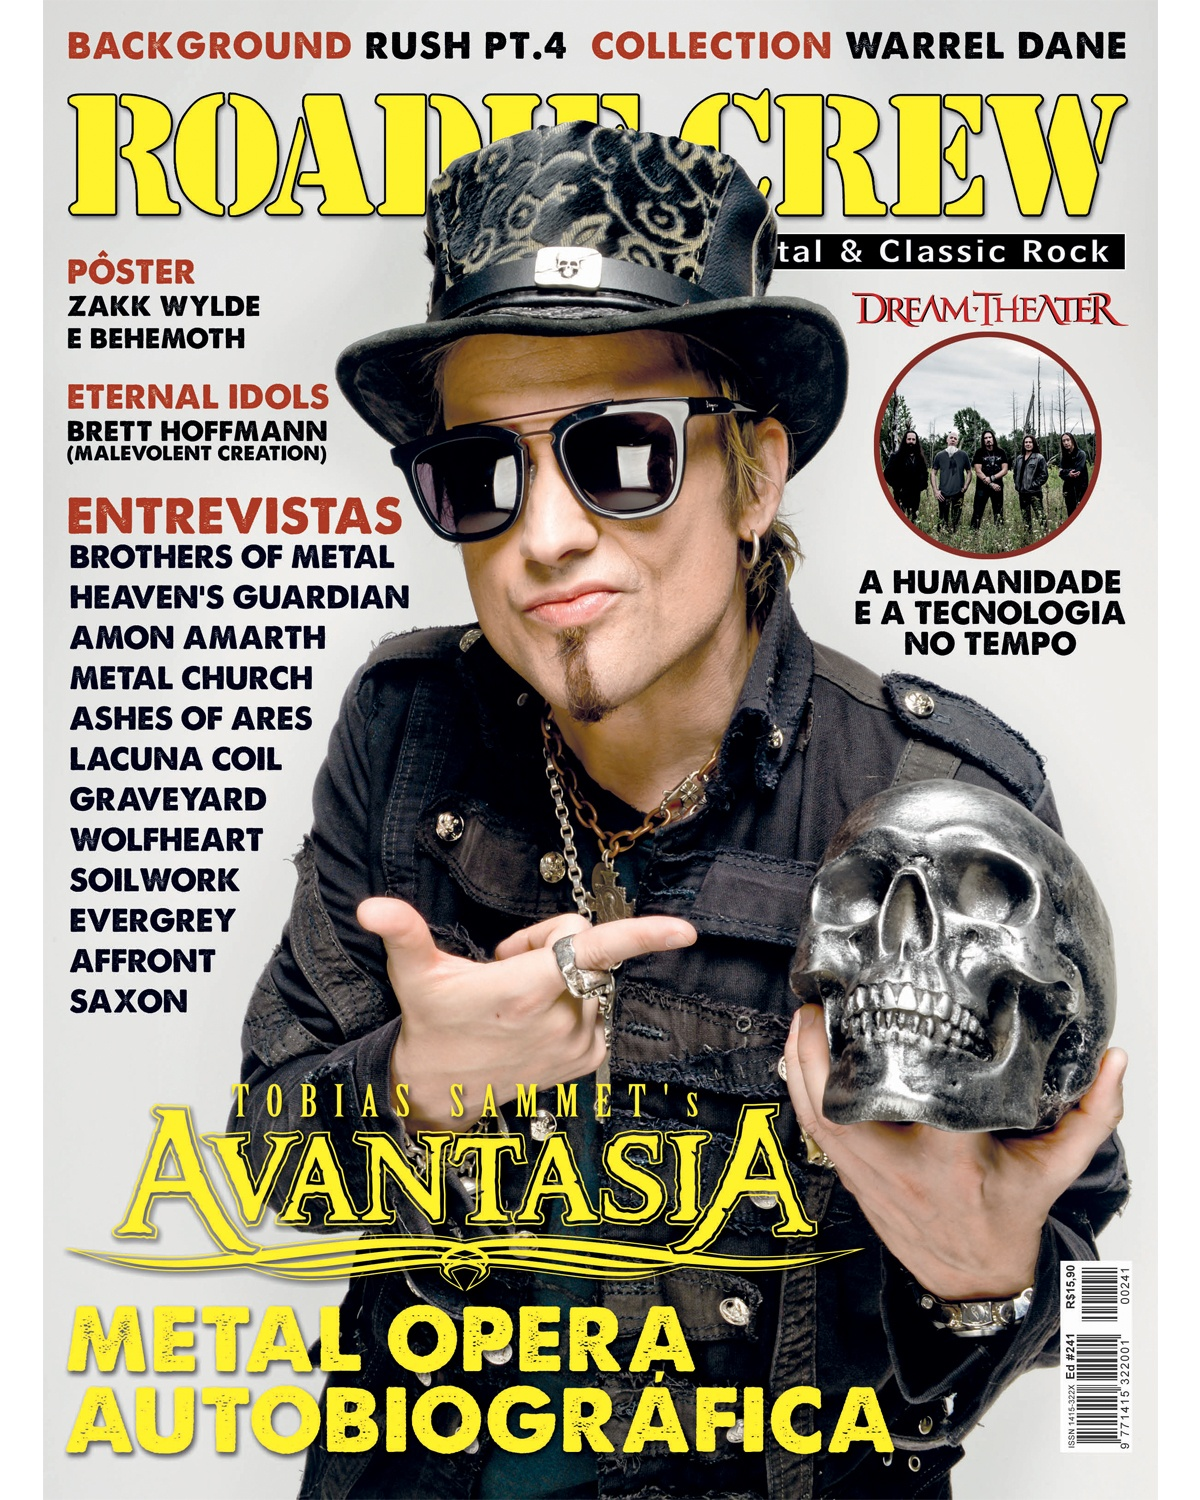 Revista Roadie Crew #241